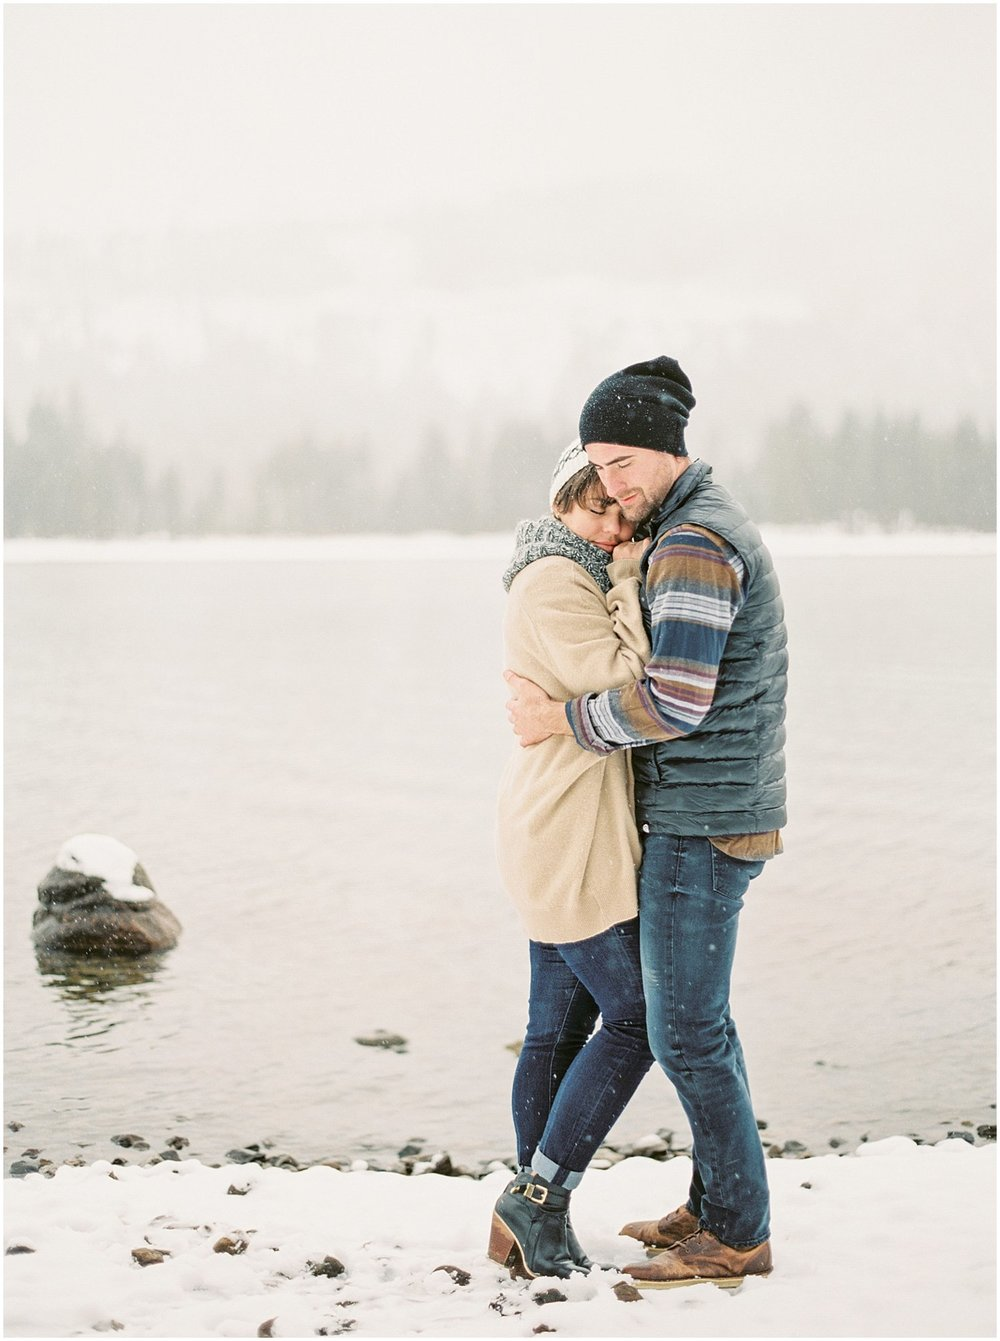 Lake_Tahoe_Engagement_Photography_08.jpg